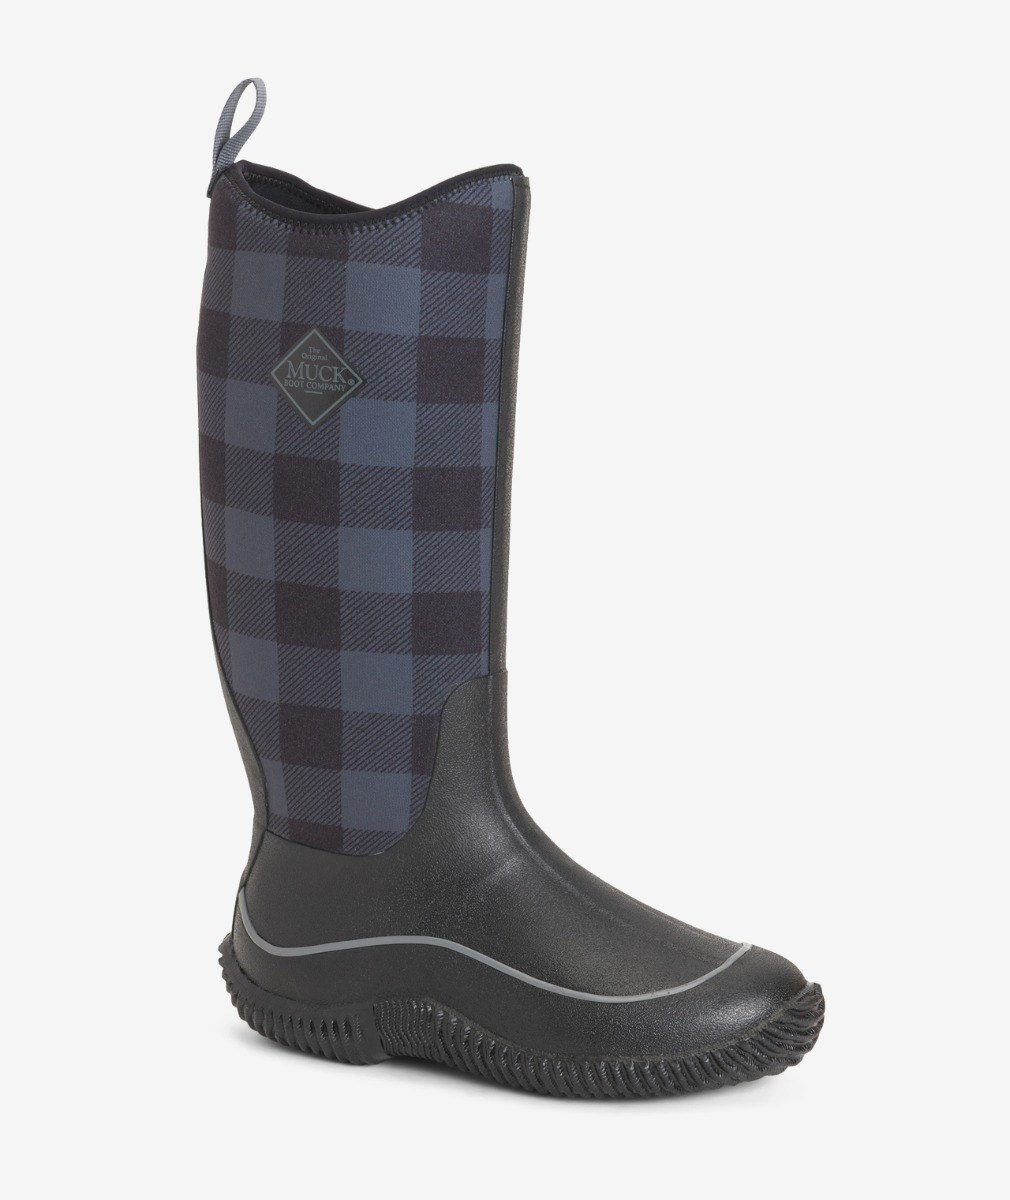 Muck Boot Women's Hale in Plaid